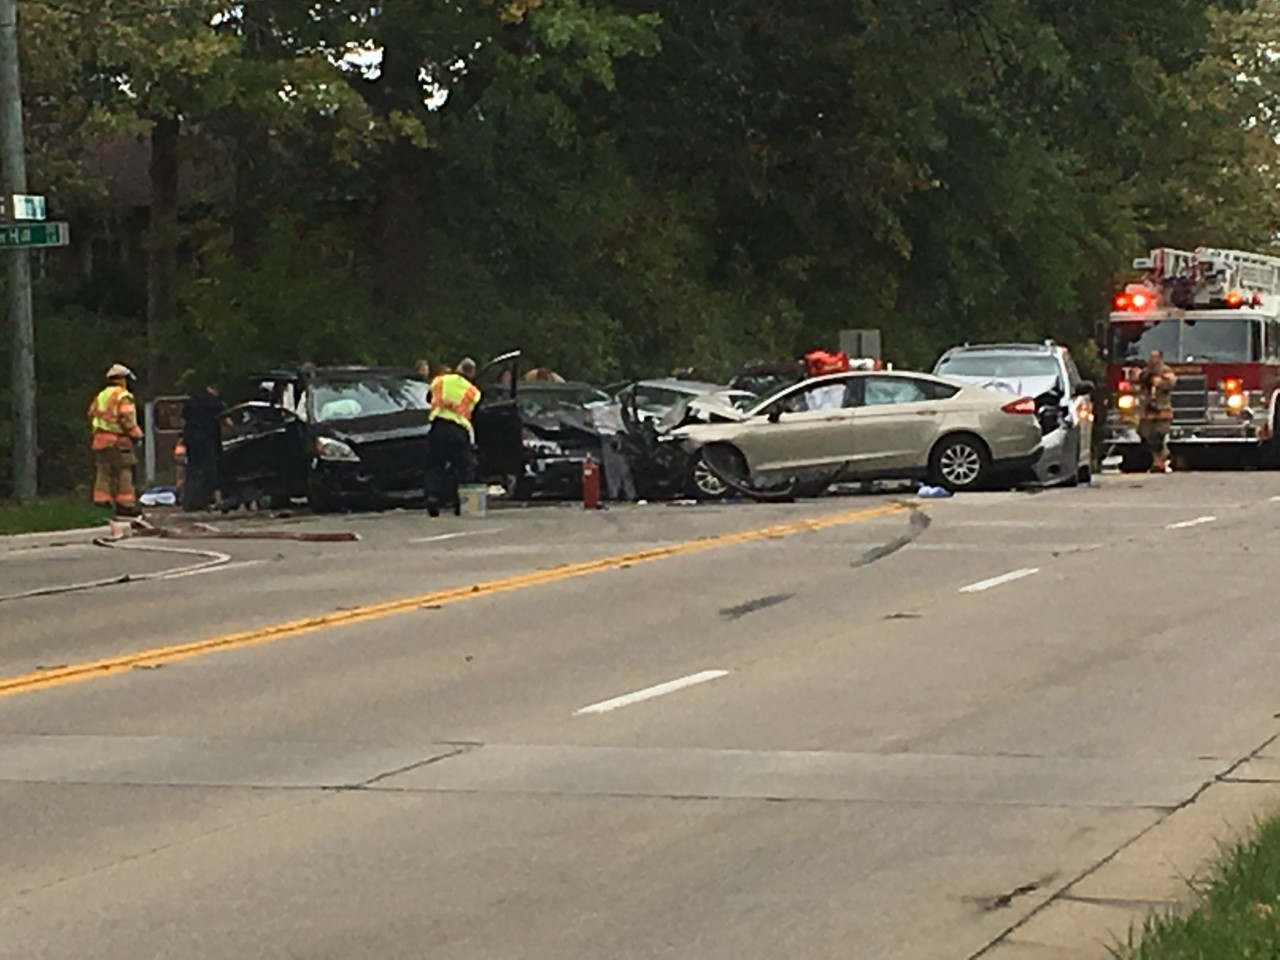 Police are responding to a four vehicle accident on Chatham Road and Lawrence Avenue. (WRSP Photojournalist Shawn Shanle)